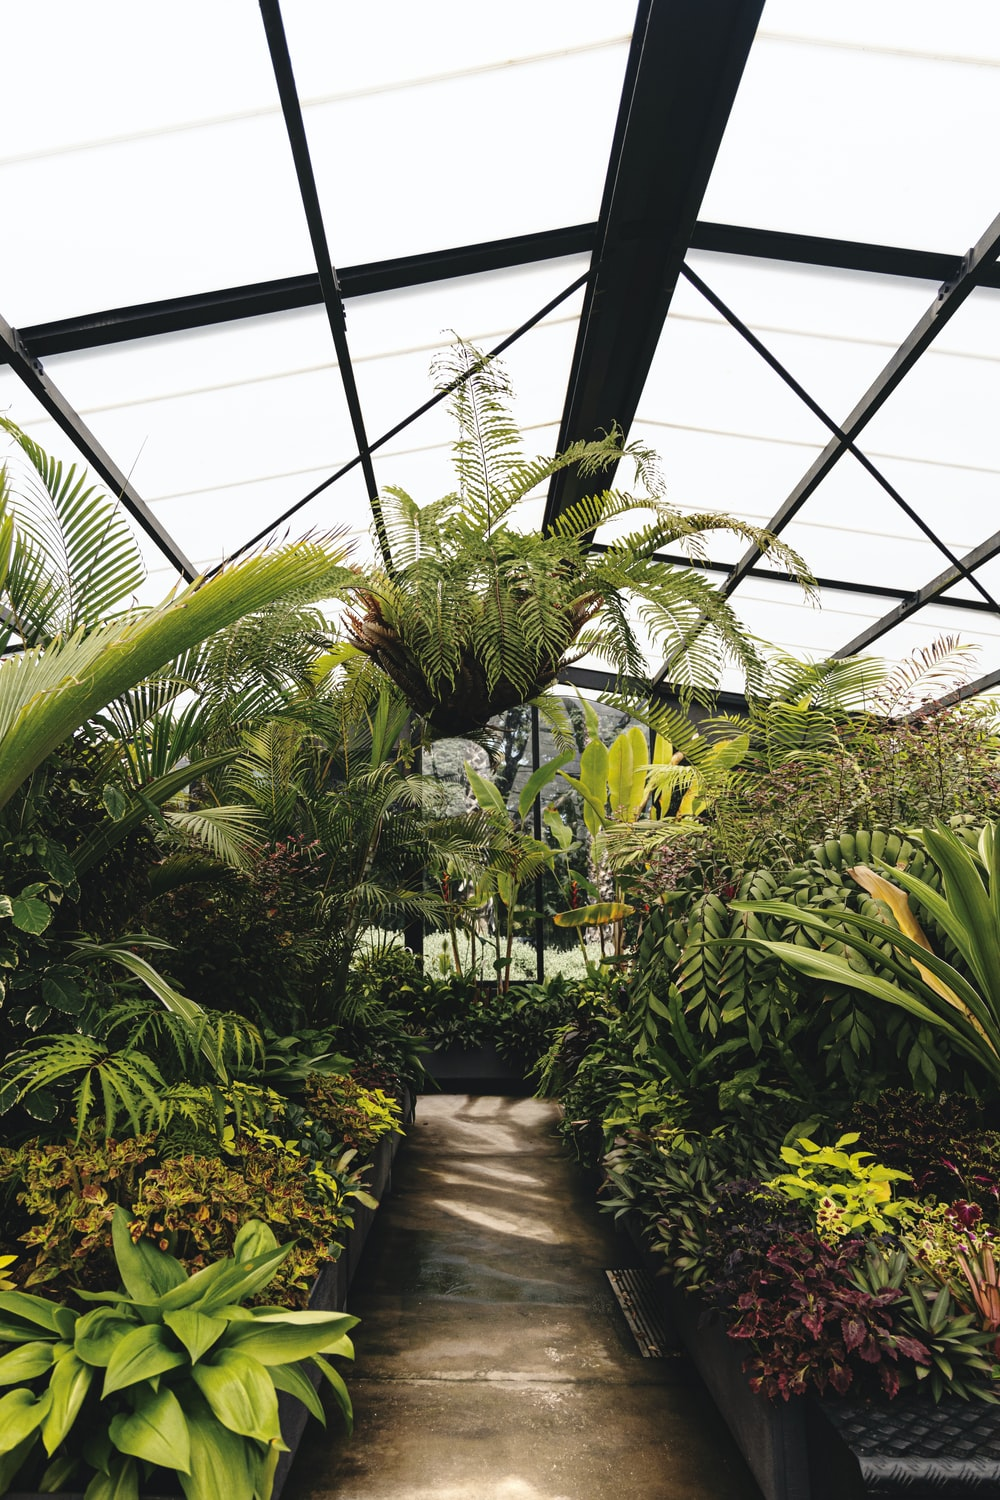 green plants inside greenhouse during daytime